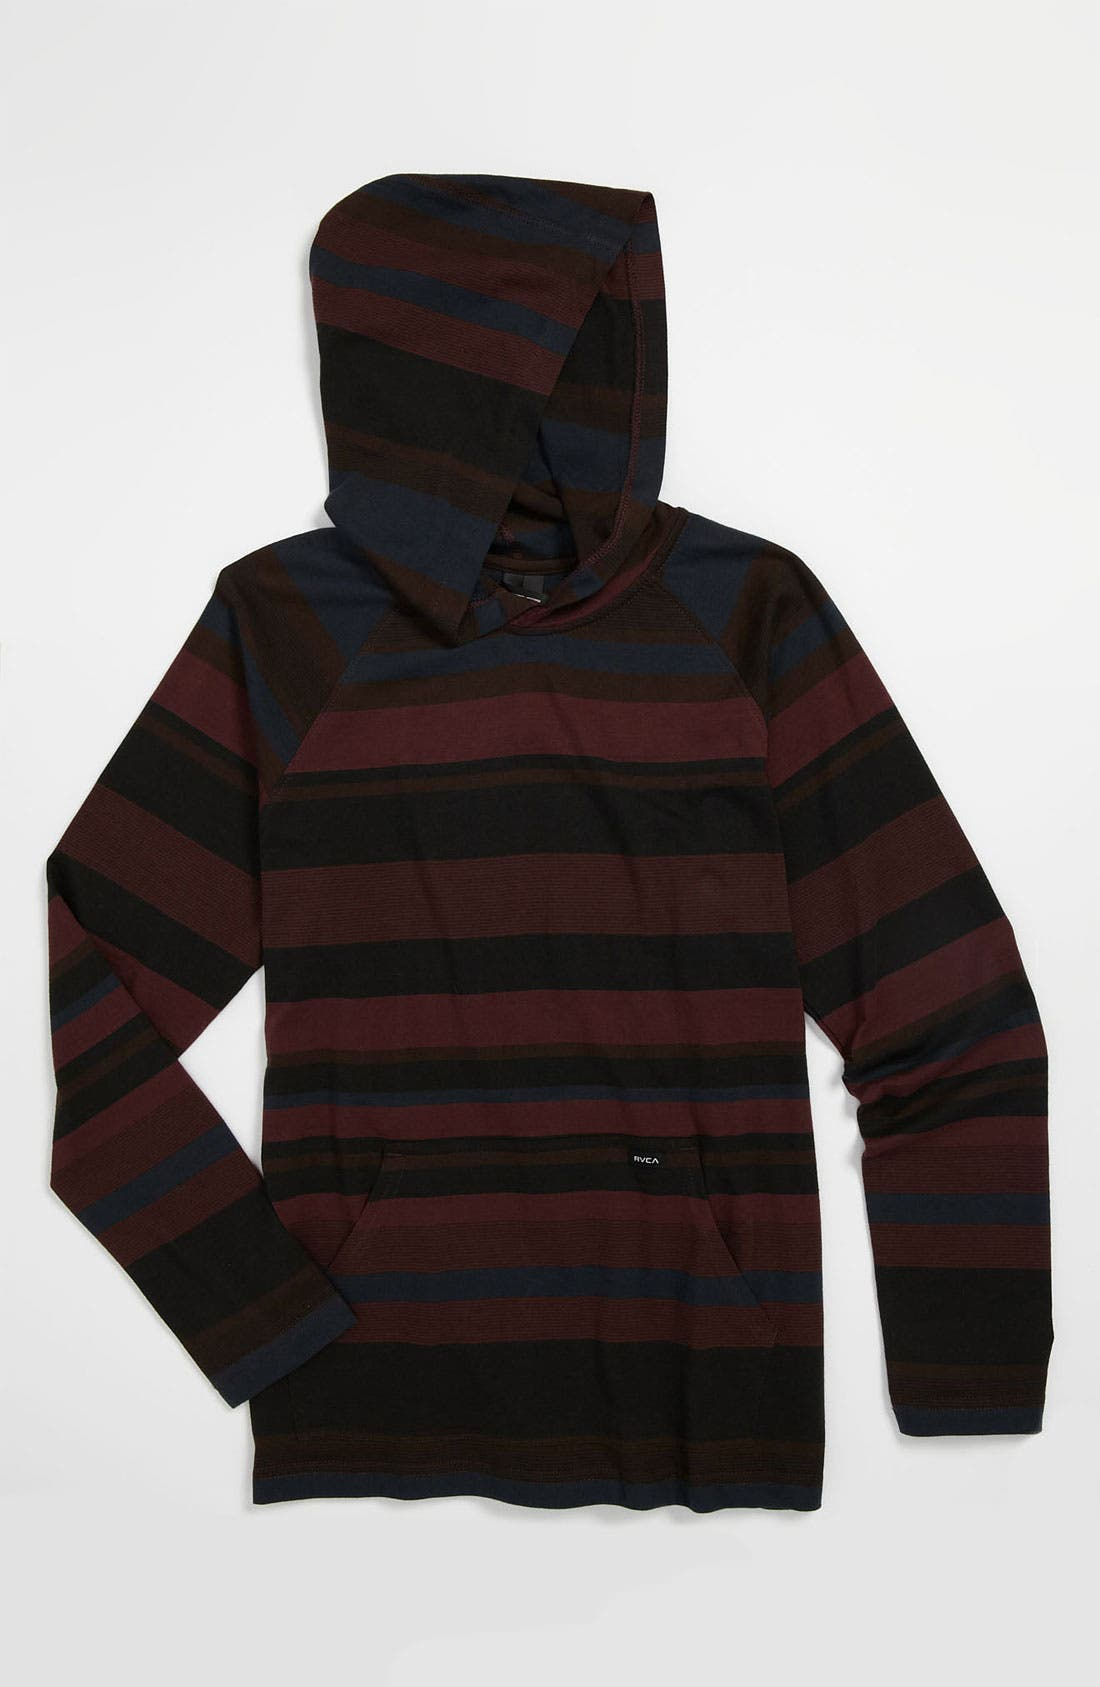 Alternate Image 1 Selected - RVCA 'Adirondak' Hooded Knit Shirt (Big Boys)